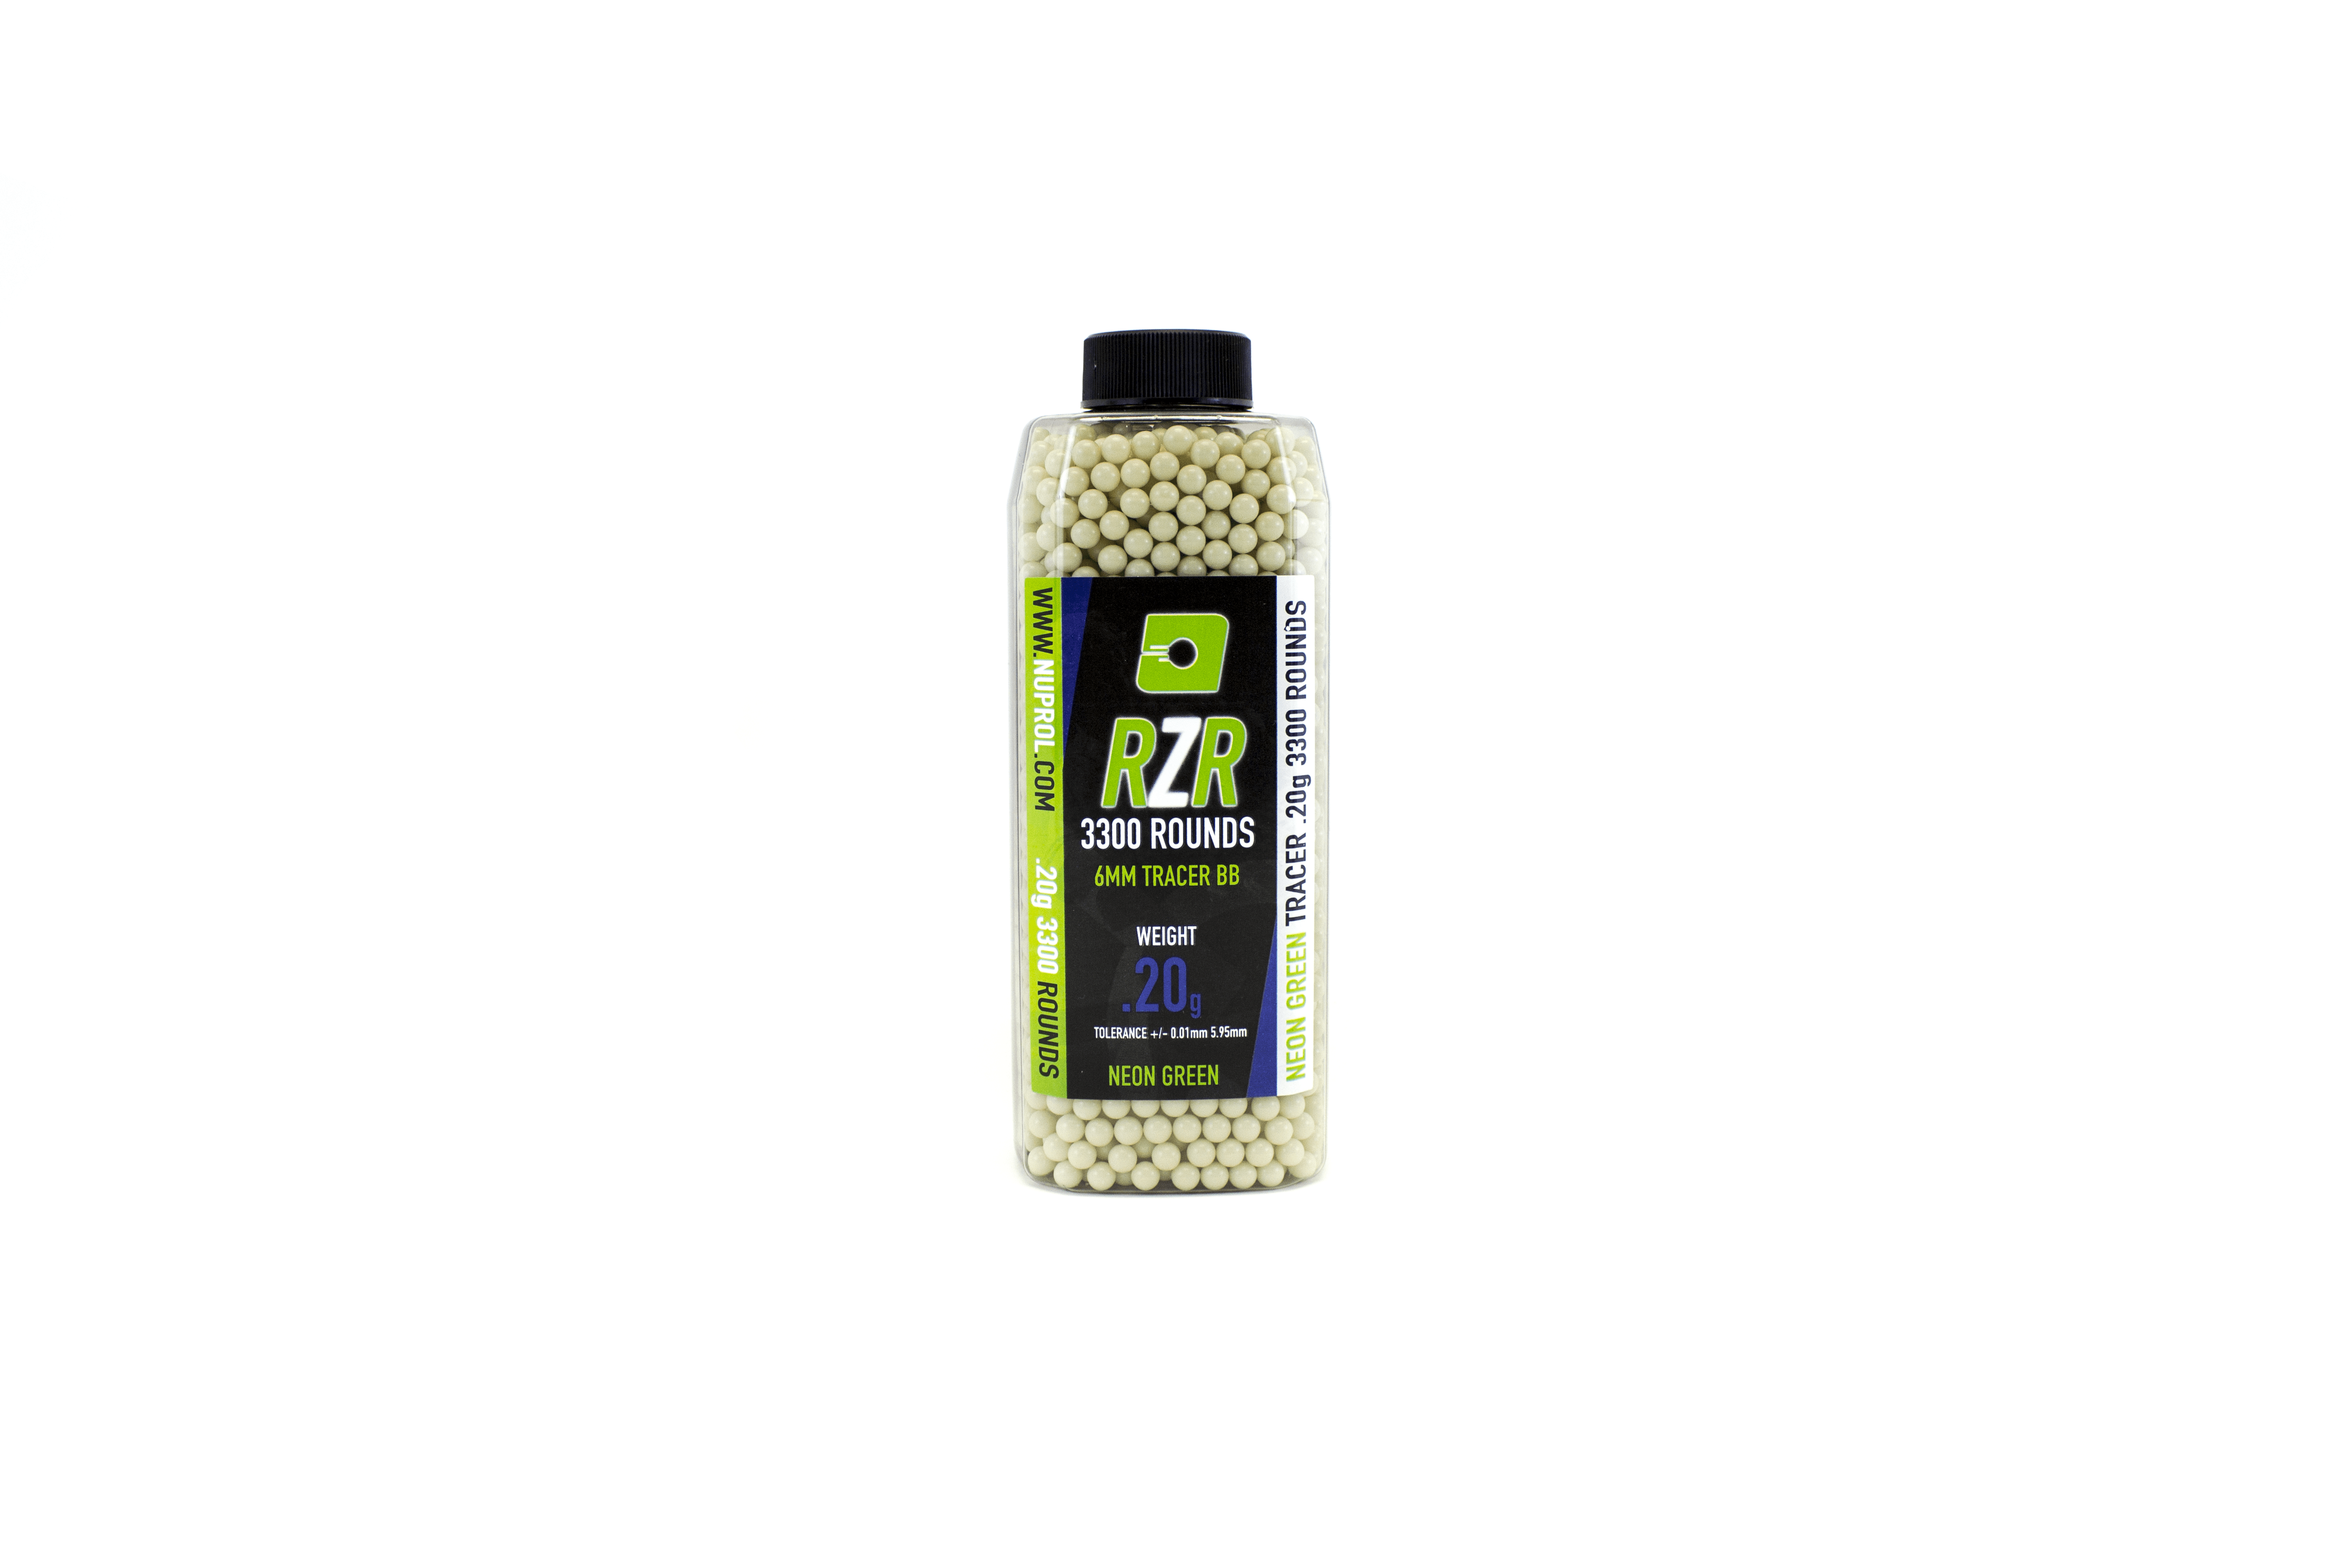 Nuprol RZR 3300Round 0.20G Green Tracer BB's product image